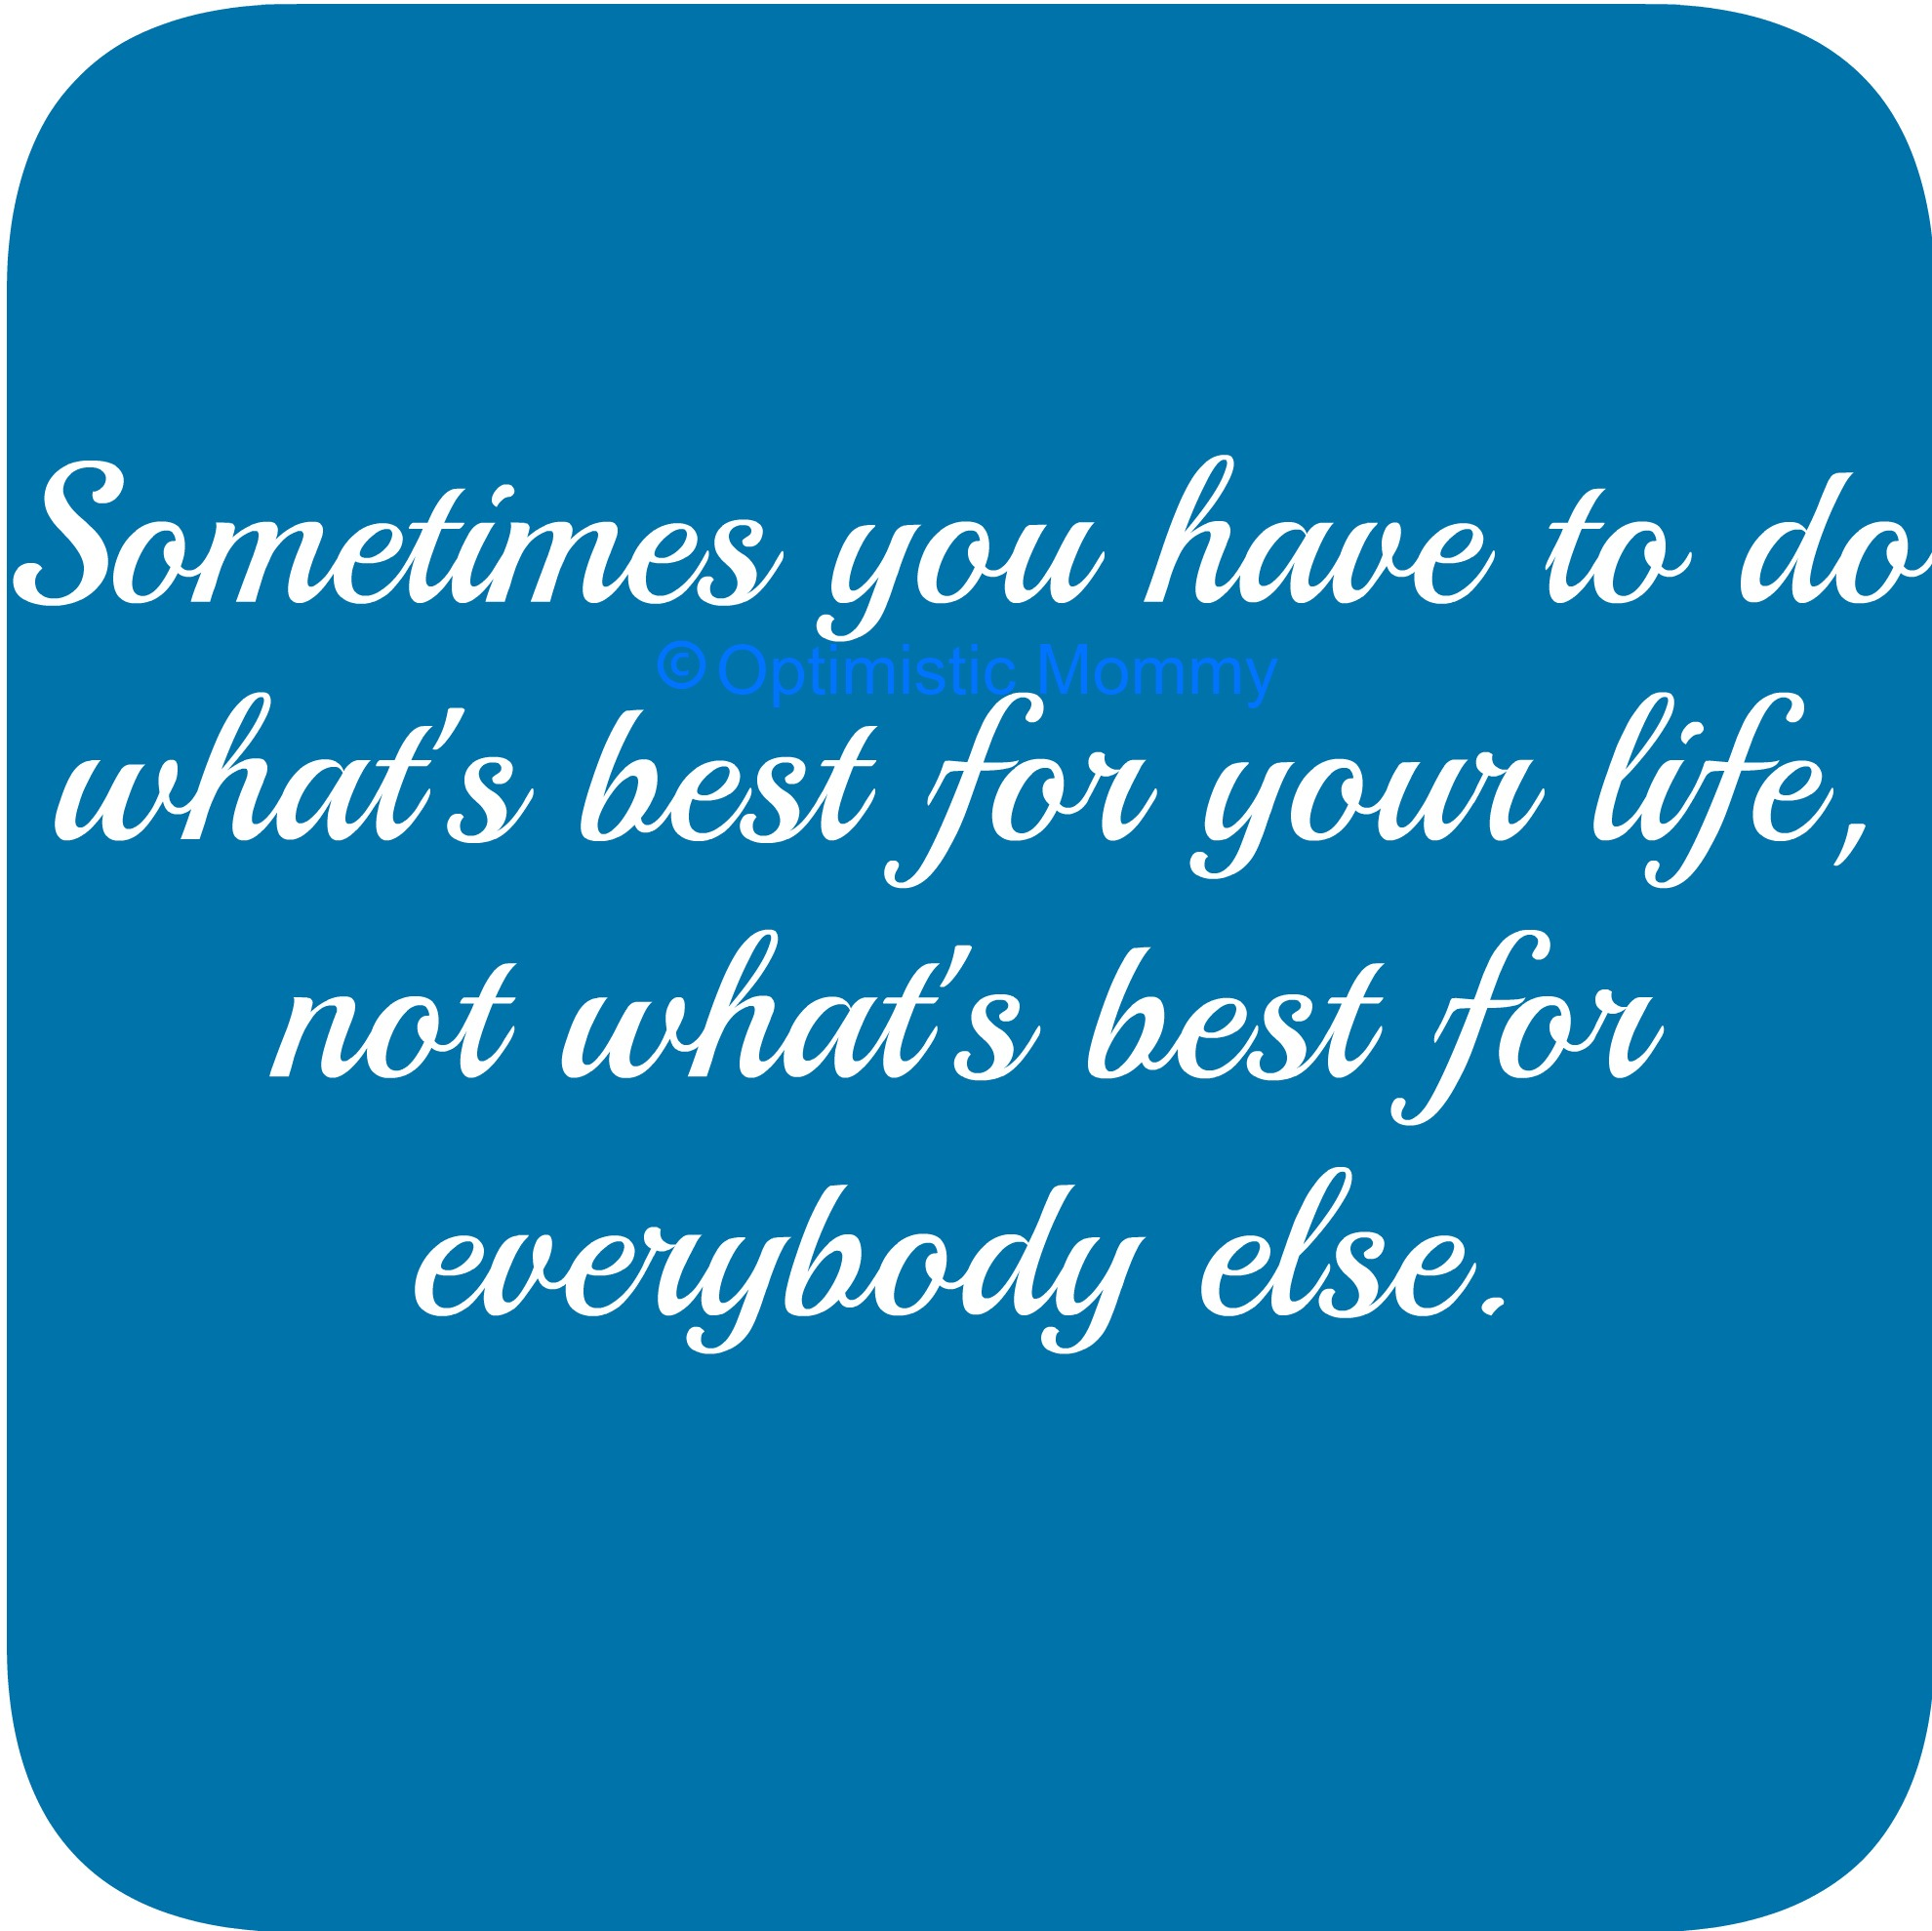 Best Quote Of The Day Quote Of The Day  December 11 2012  Optimistic Mommy